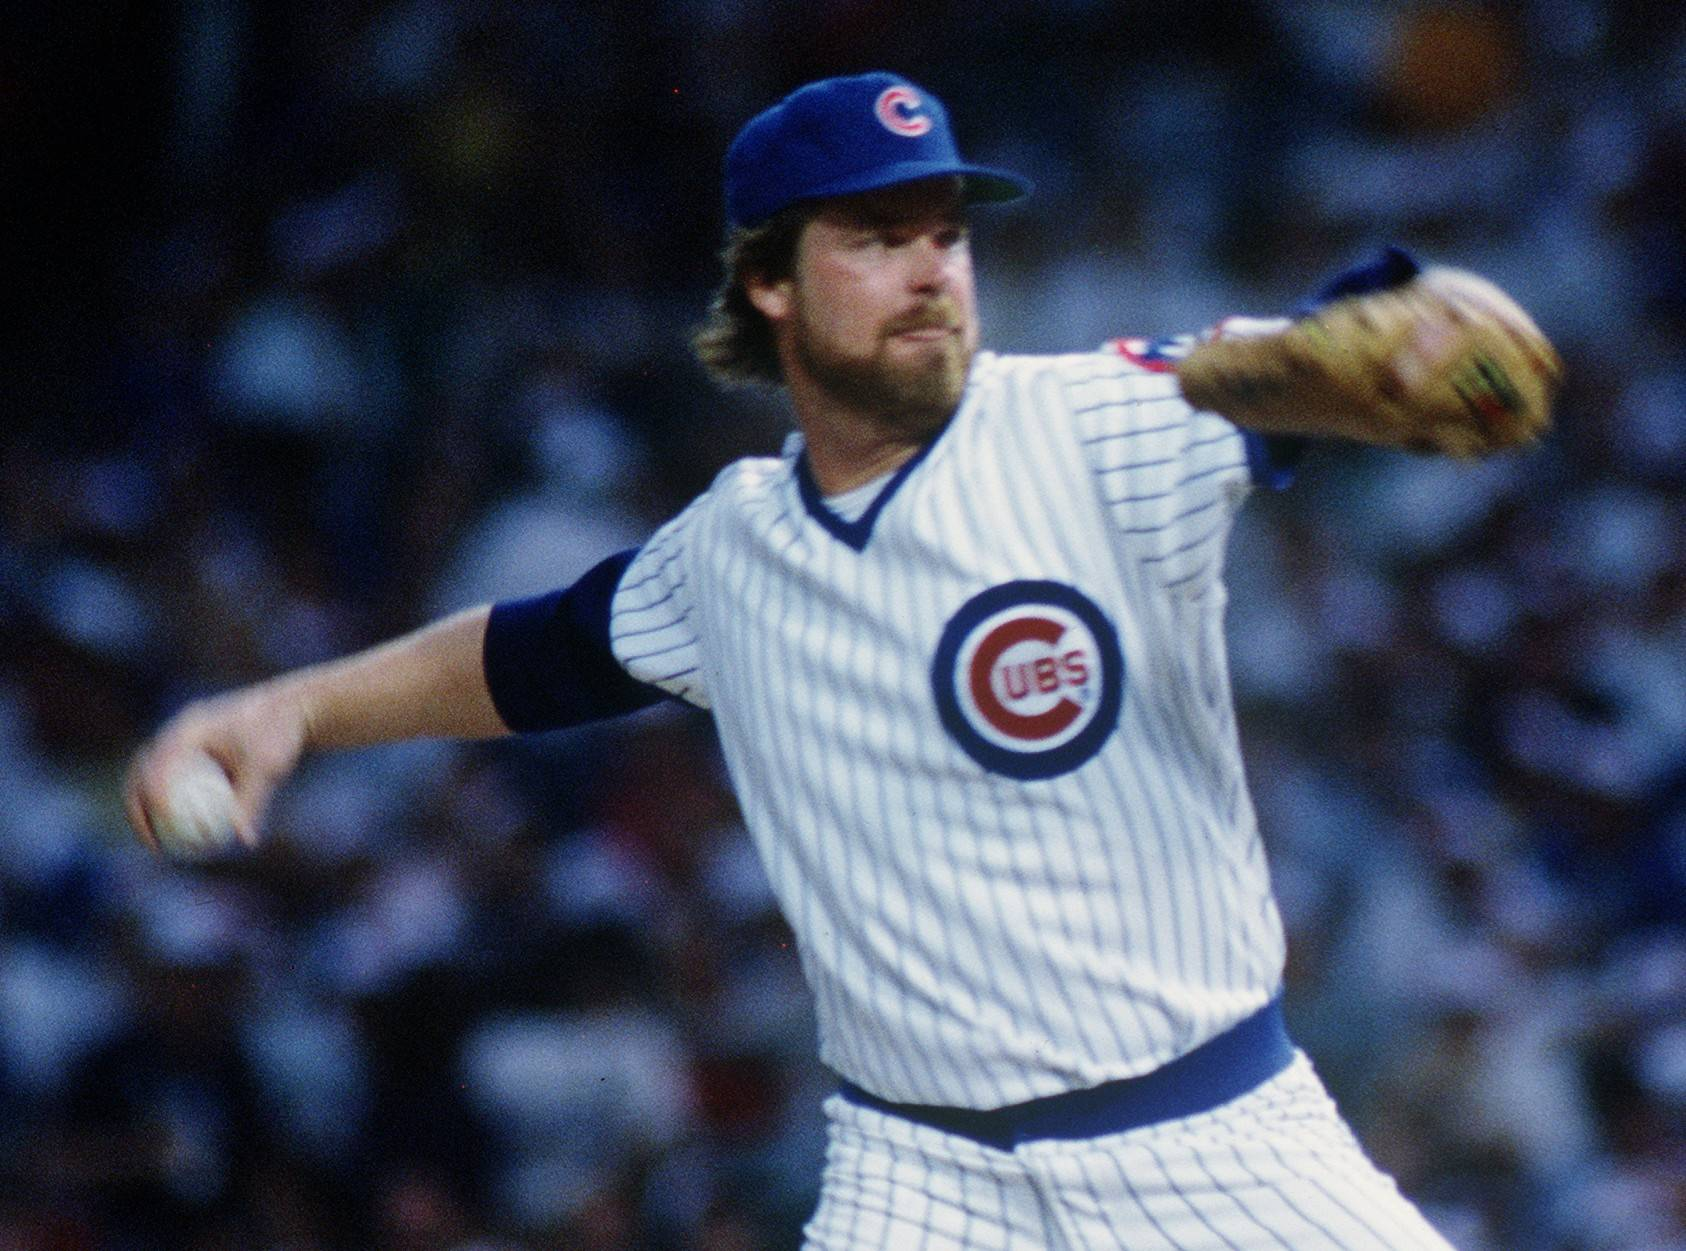 Cubs ace Rick Sutcliffe turned in a Jake Arrieta-like 1984 season and won the Cy Young Award. But he got hurt in 1985 and the Cubs faltered.